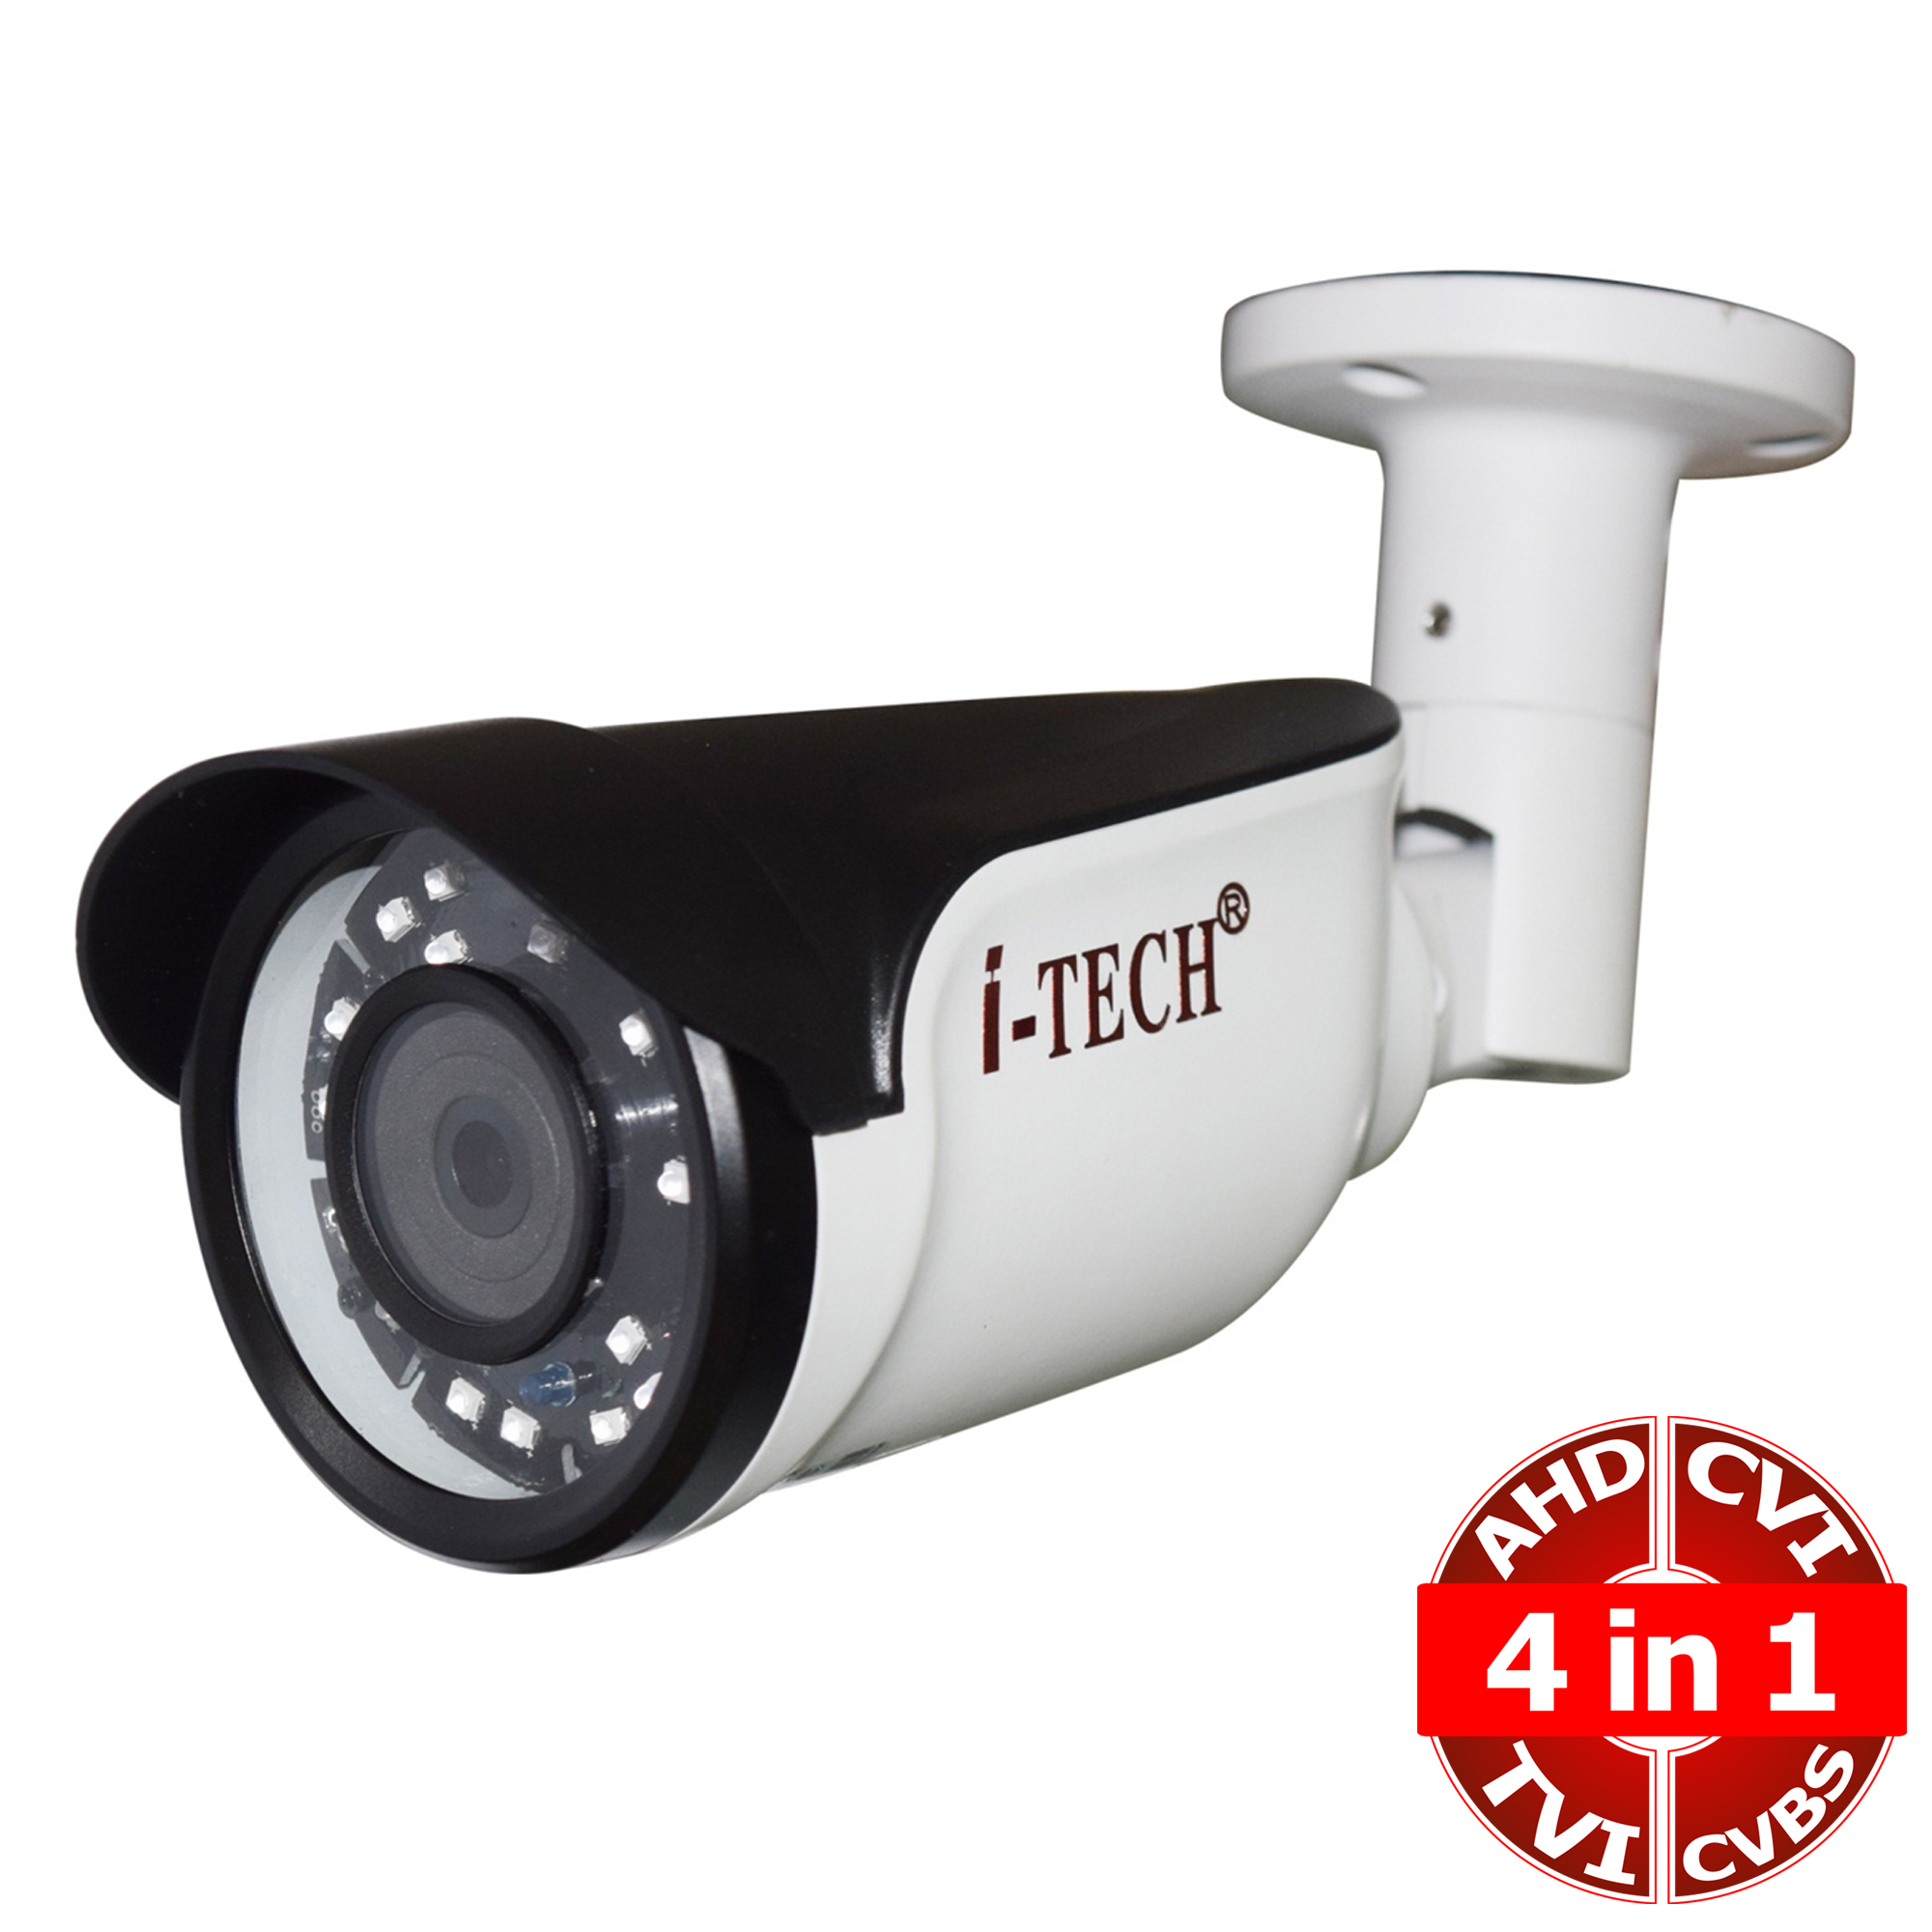 Camera AHD 4 in 1 iTech-QA7V